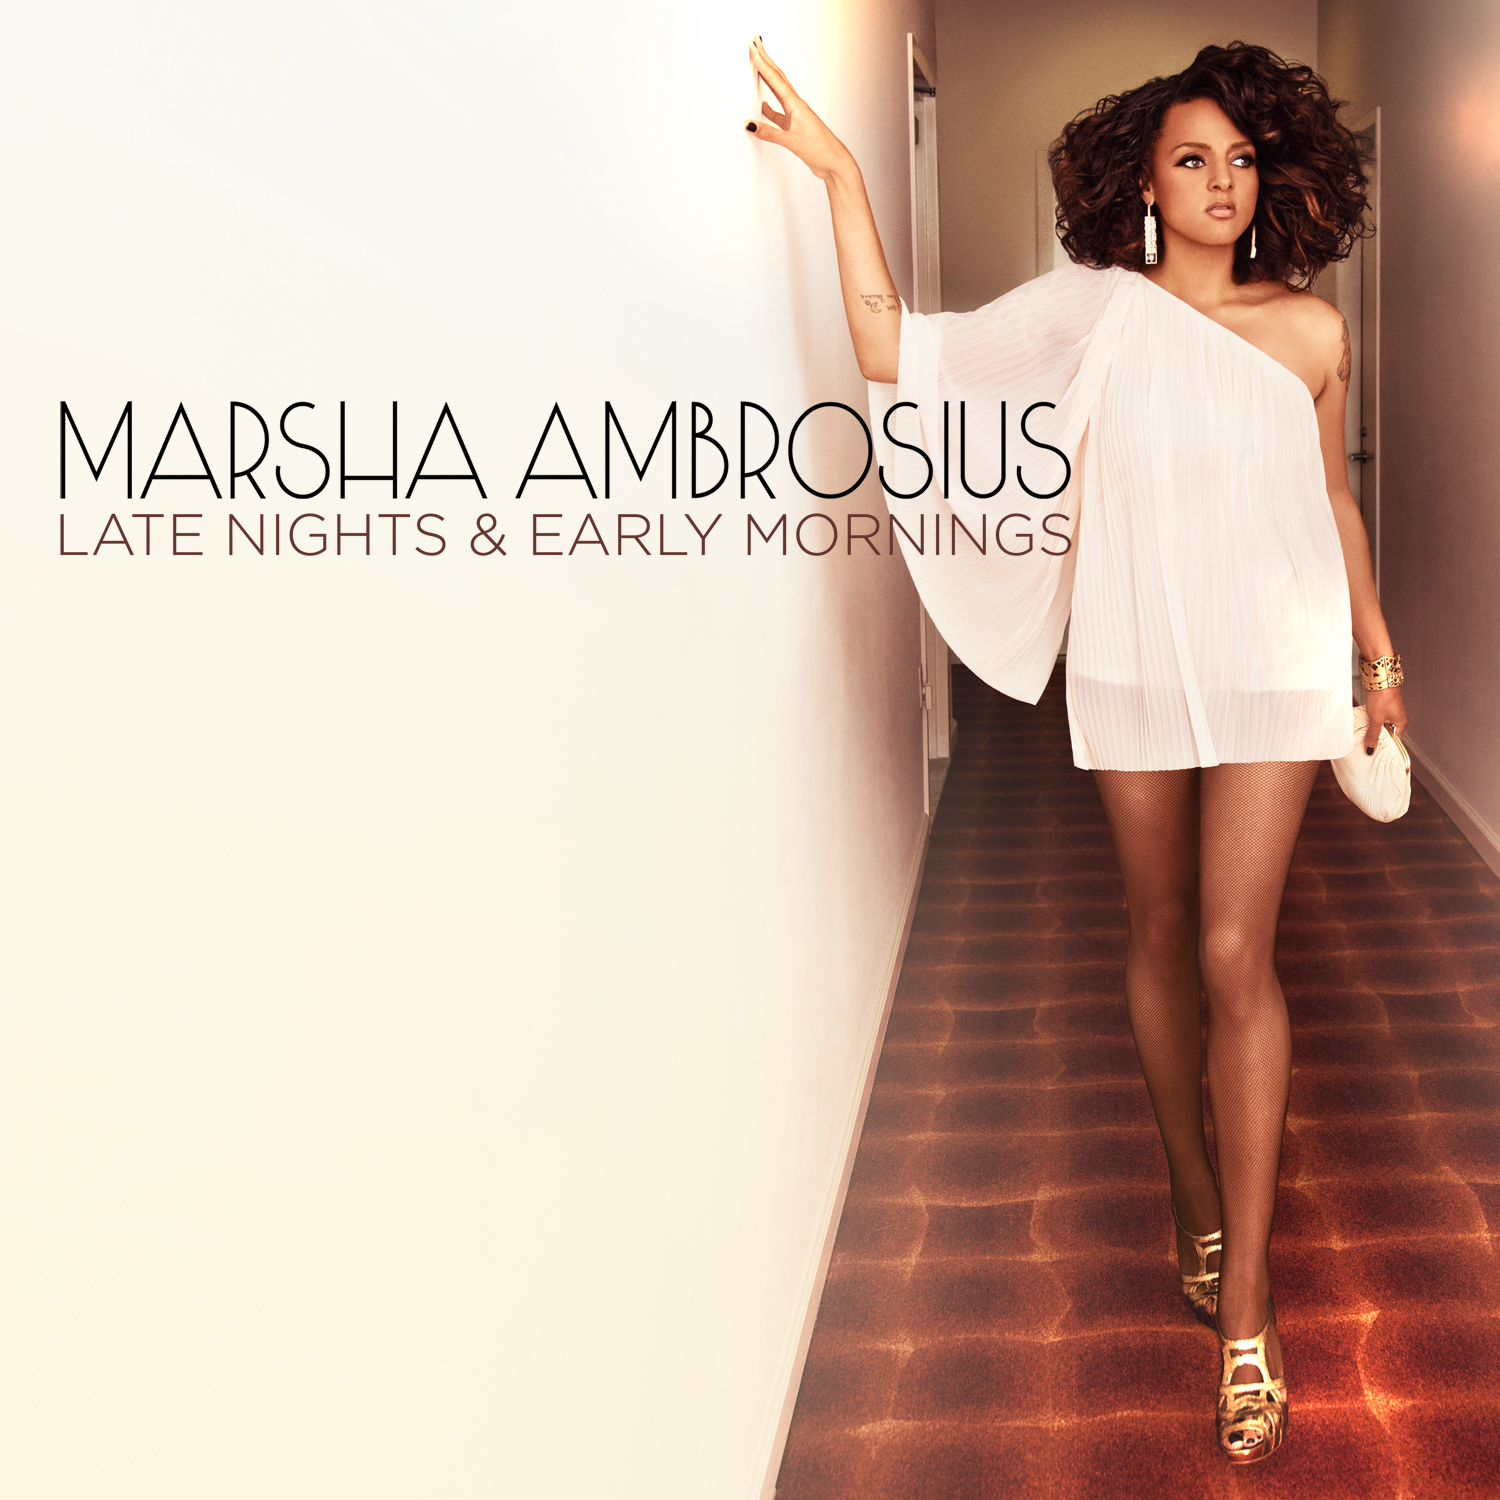 MARSHA_AMBROSIUS_Late Nights Early Mornings